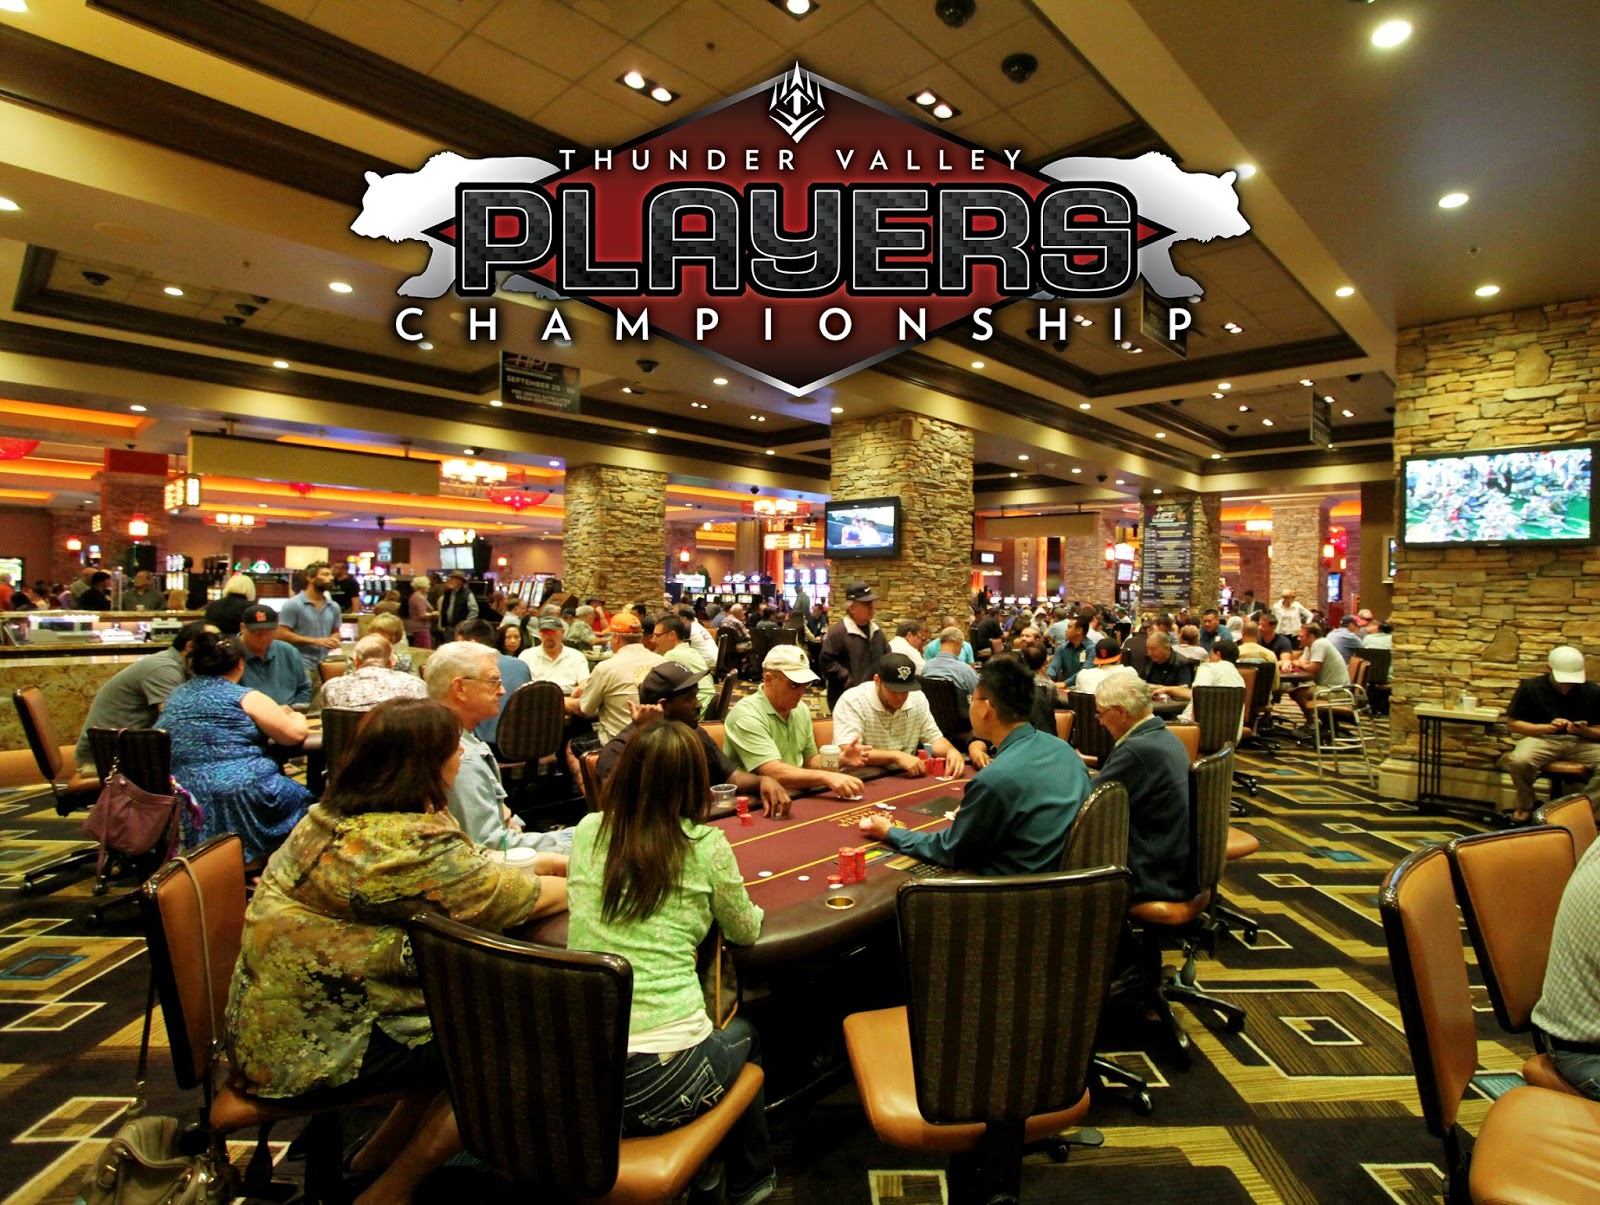 The season of the World Series of Poker Circuit promises to be biggest in the tour's year history. There are more options than ever, including three new venues: Seminole Hard Rock (Hollywood, Fla.), Seminole Coconut Creek (Fla.), and Thunder Valley Resort and Casino (northern California).